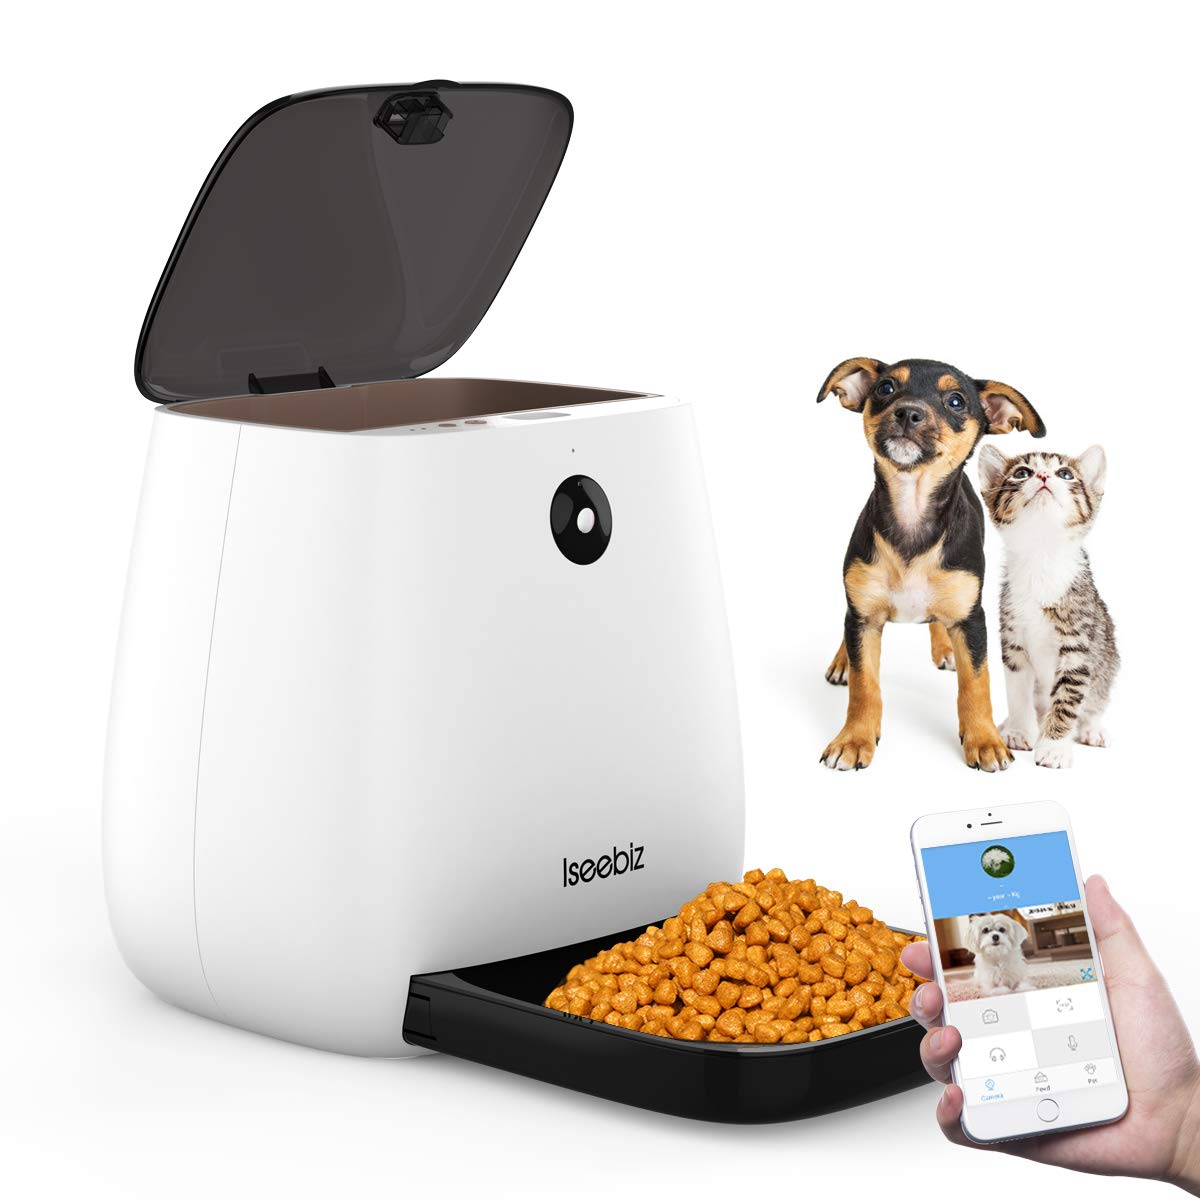 Iseebiz Smart Pet Feeder with 1080P Camera, 3.3L Automatic Cat Dog Feeder, App Control, Food Weighing, Auto Video Record, 2-Way Audio, 12 Meals a Day for Medium Small Cats Dogs, Compatible with Alexa by Iseebiz